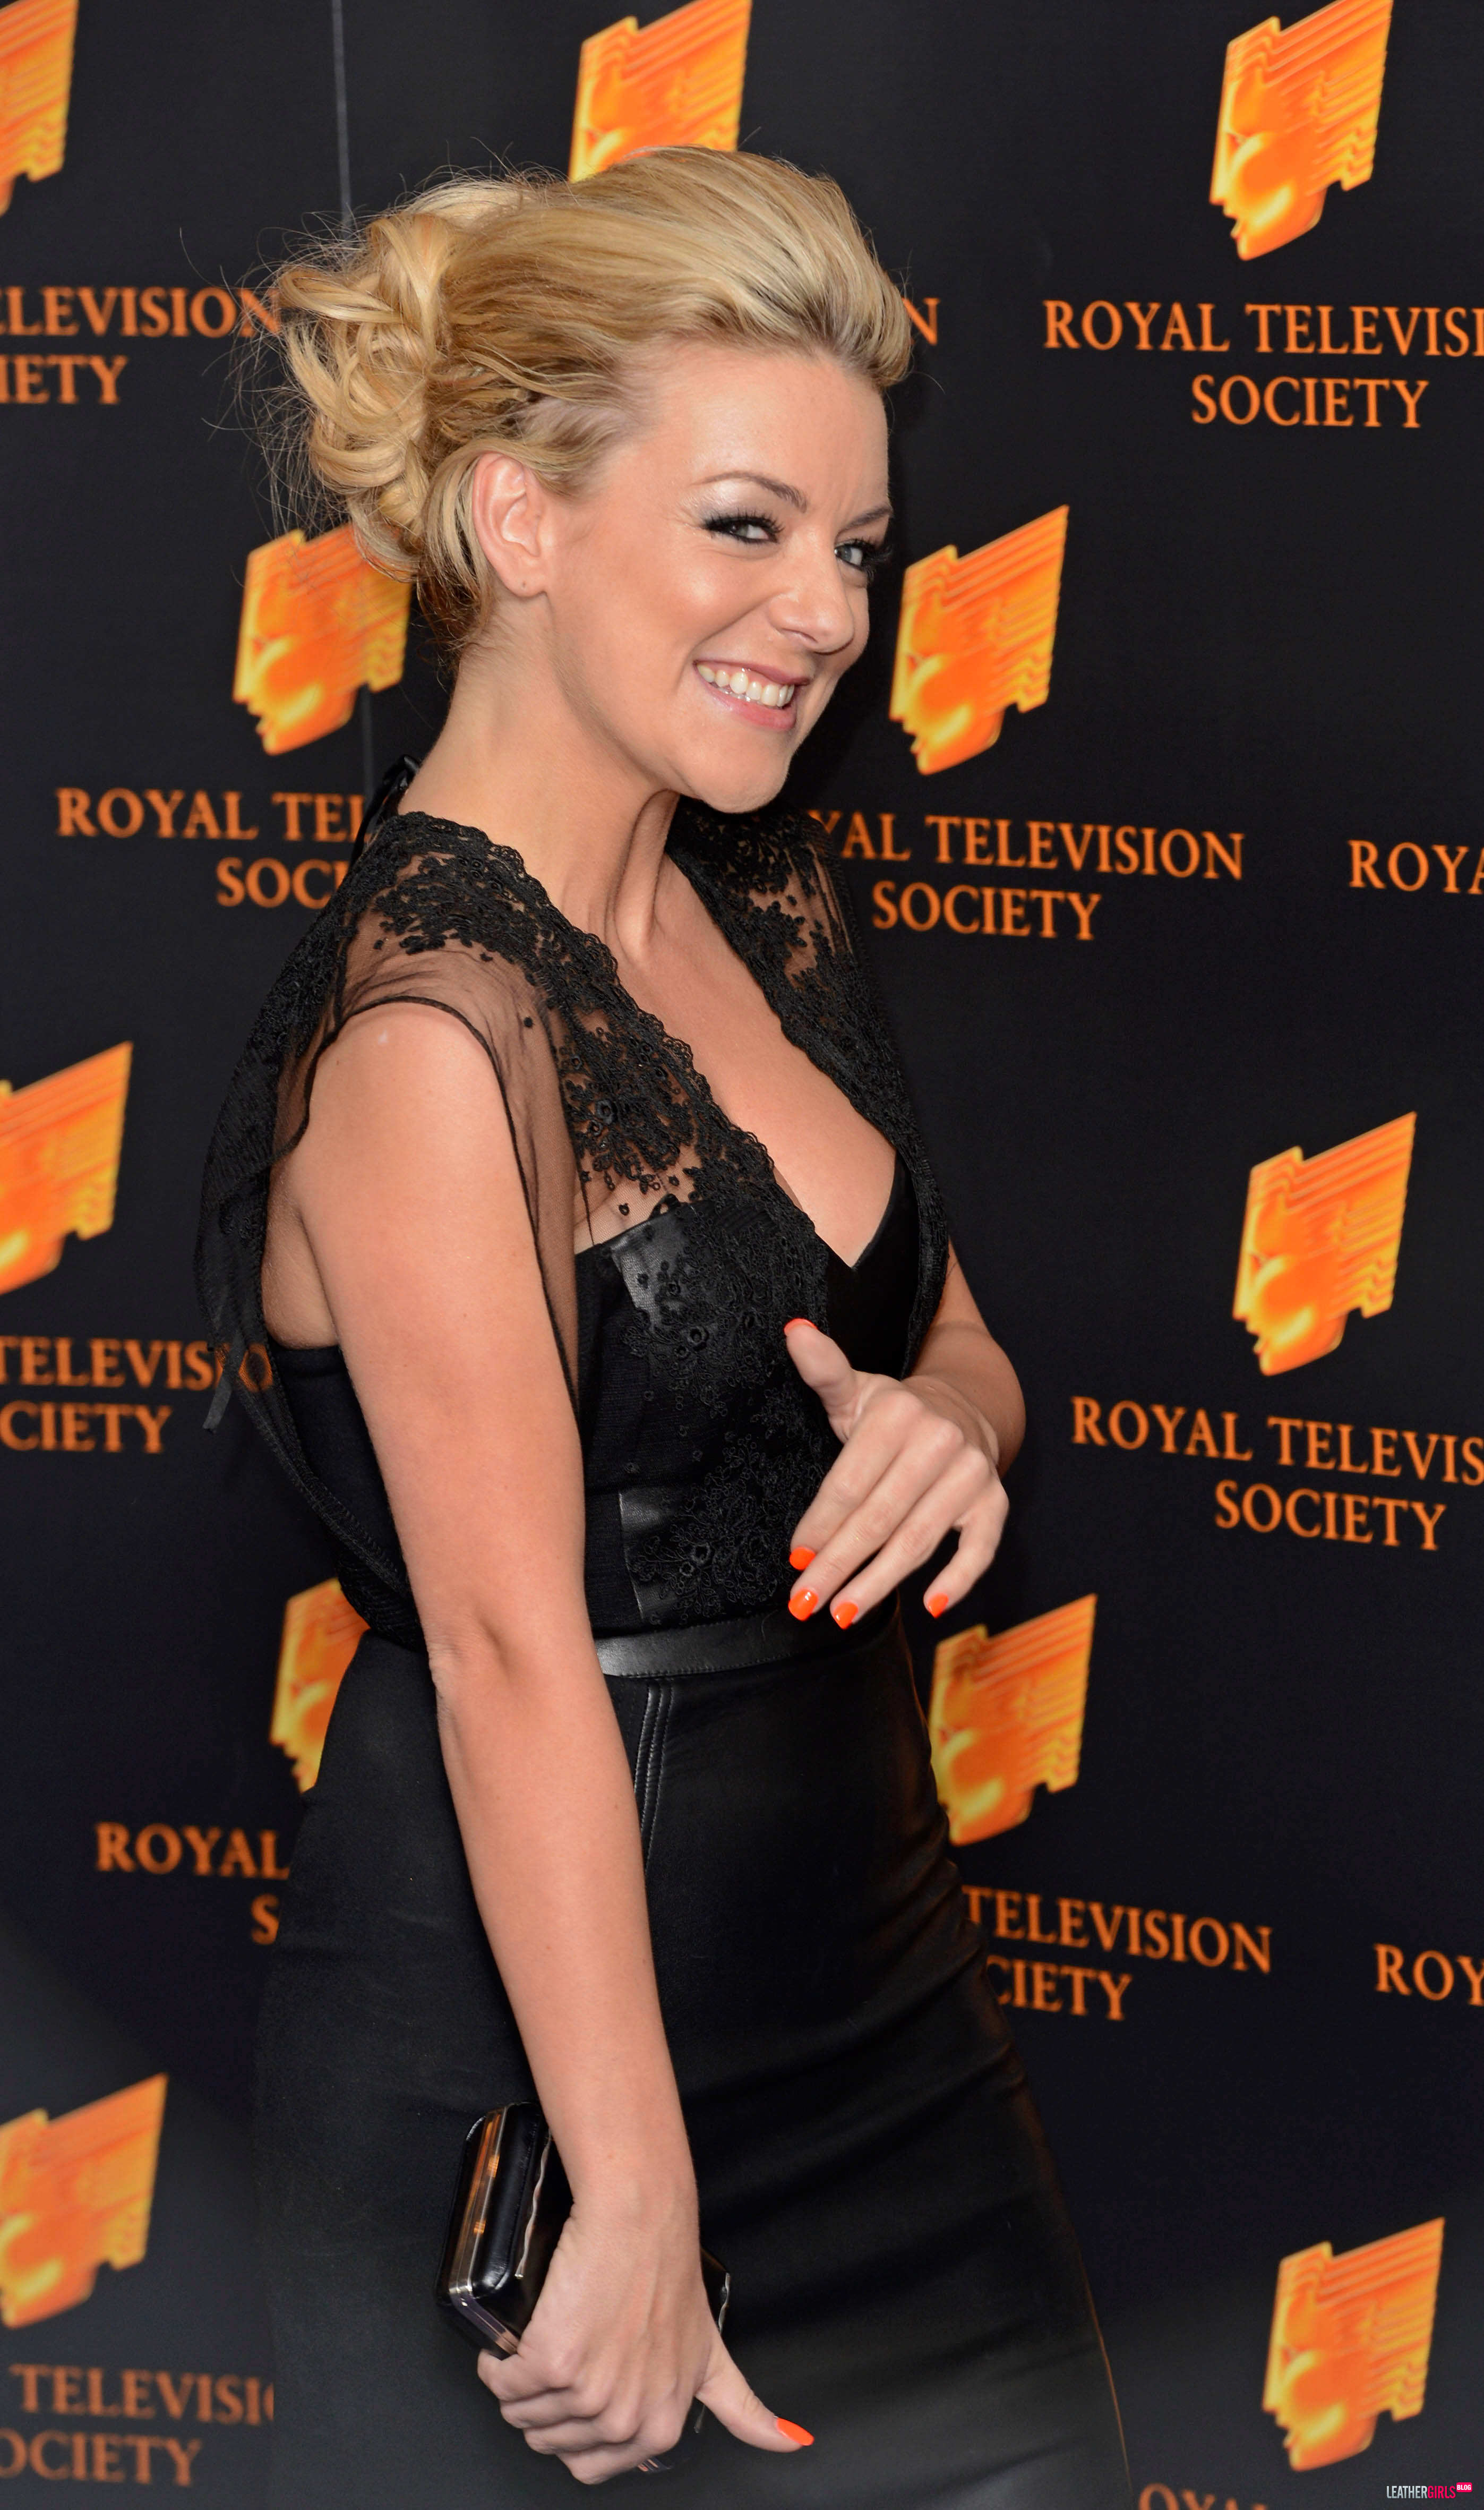 776349961_Sheridan_Smith__RTS_Programme_Awards___19_03_13_Adds001_122_221lo.jpg